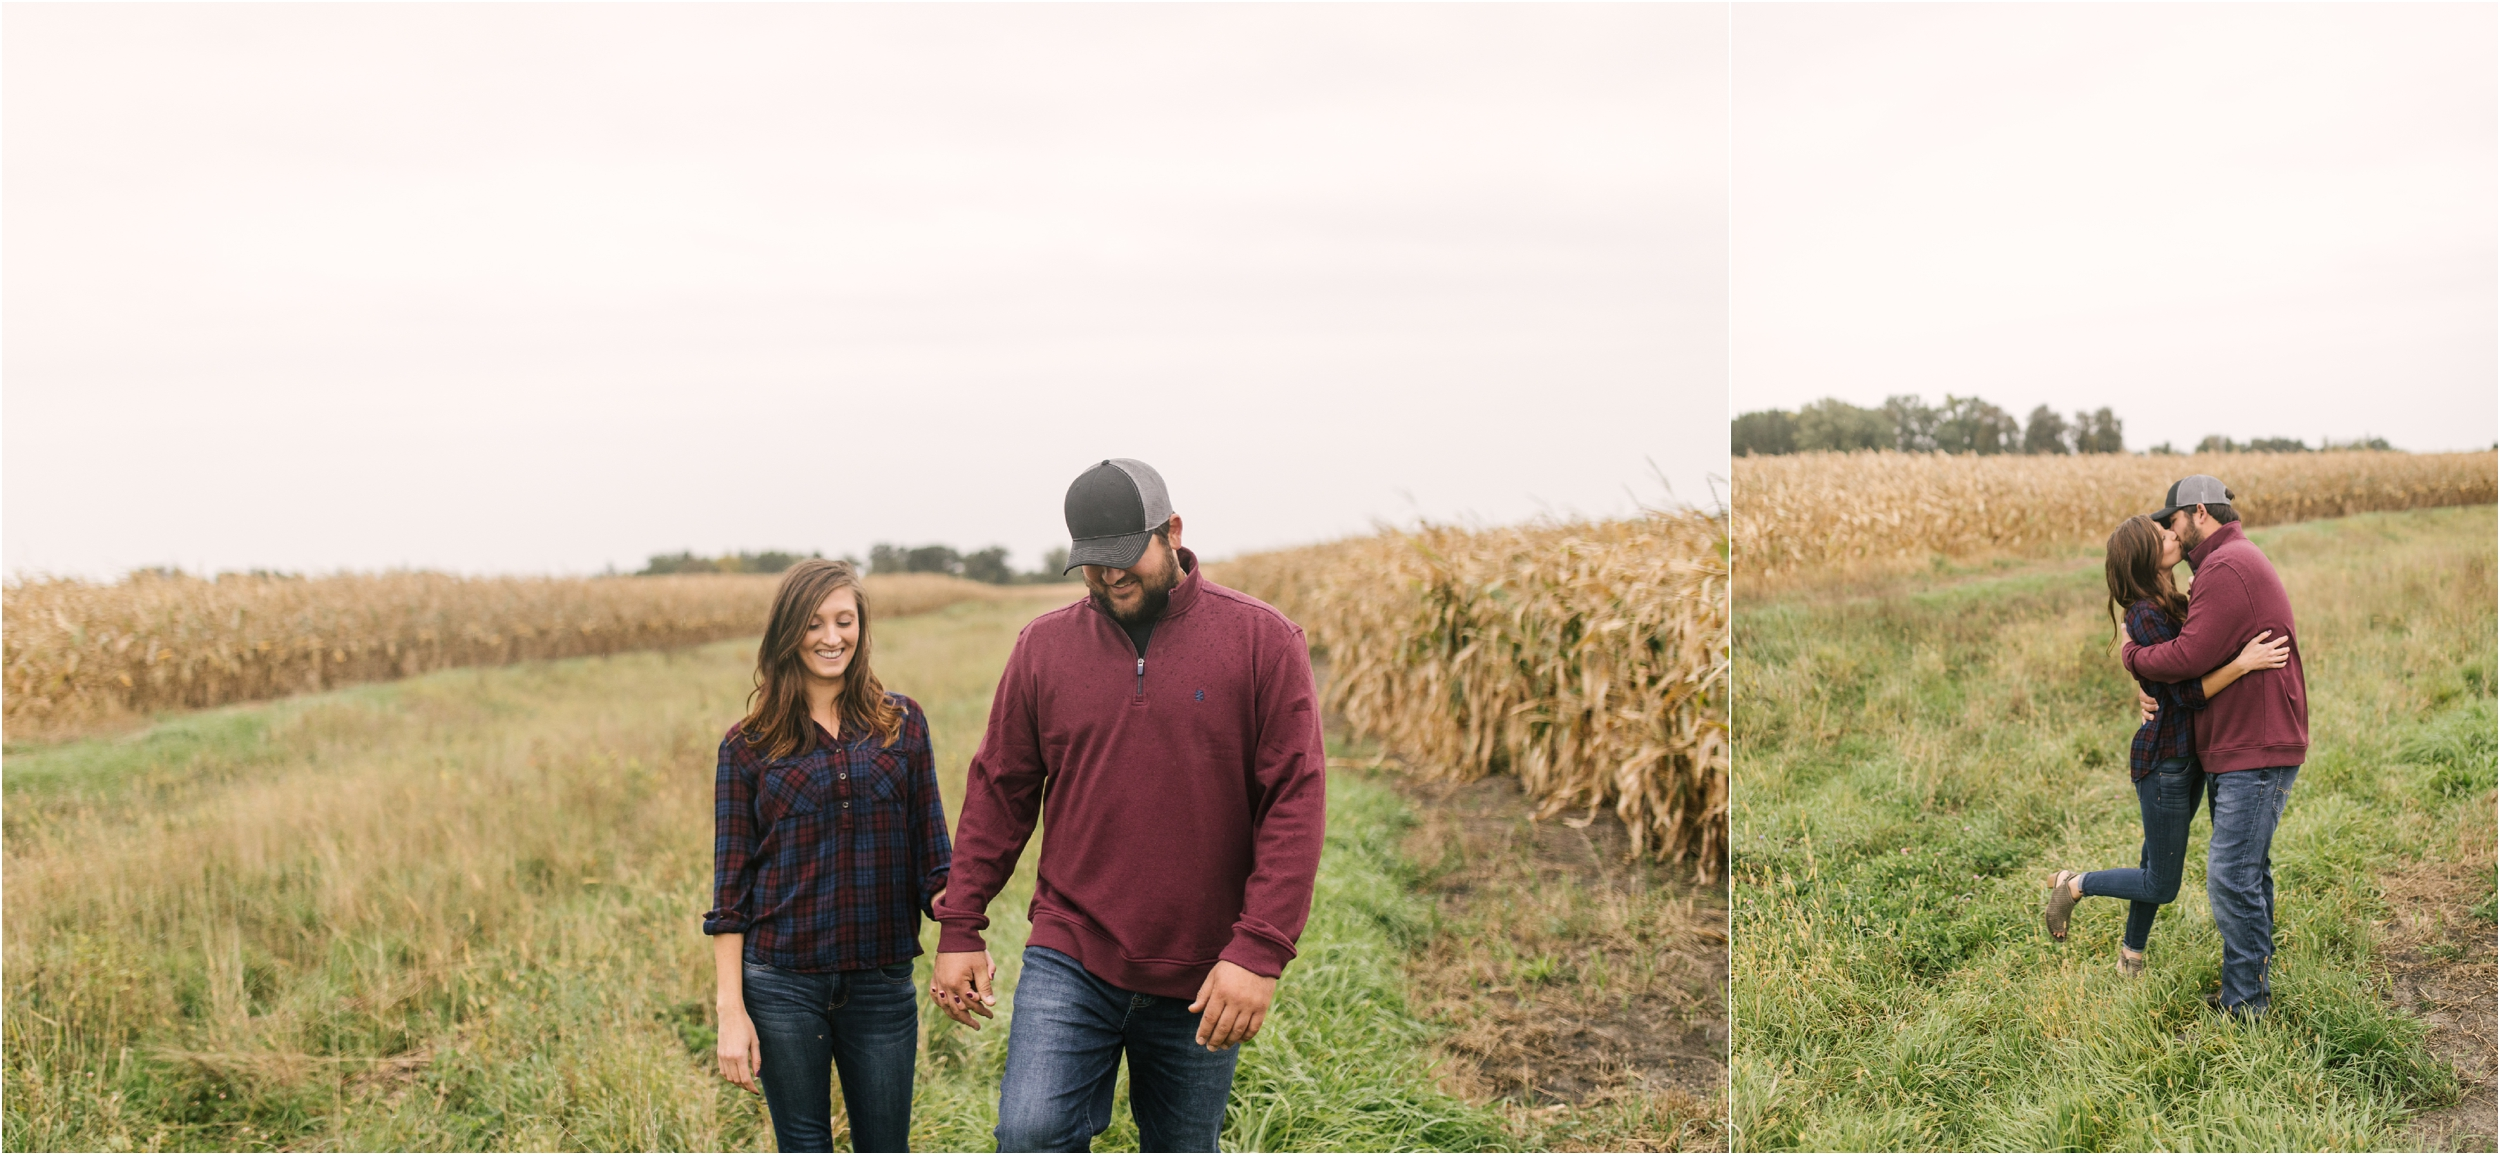 Countryside Engagement Photos_ Minnesota Wedding Photographer_Stephanie Lynn Photography_0070.jpg